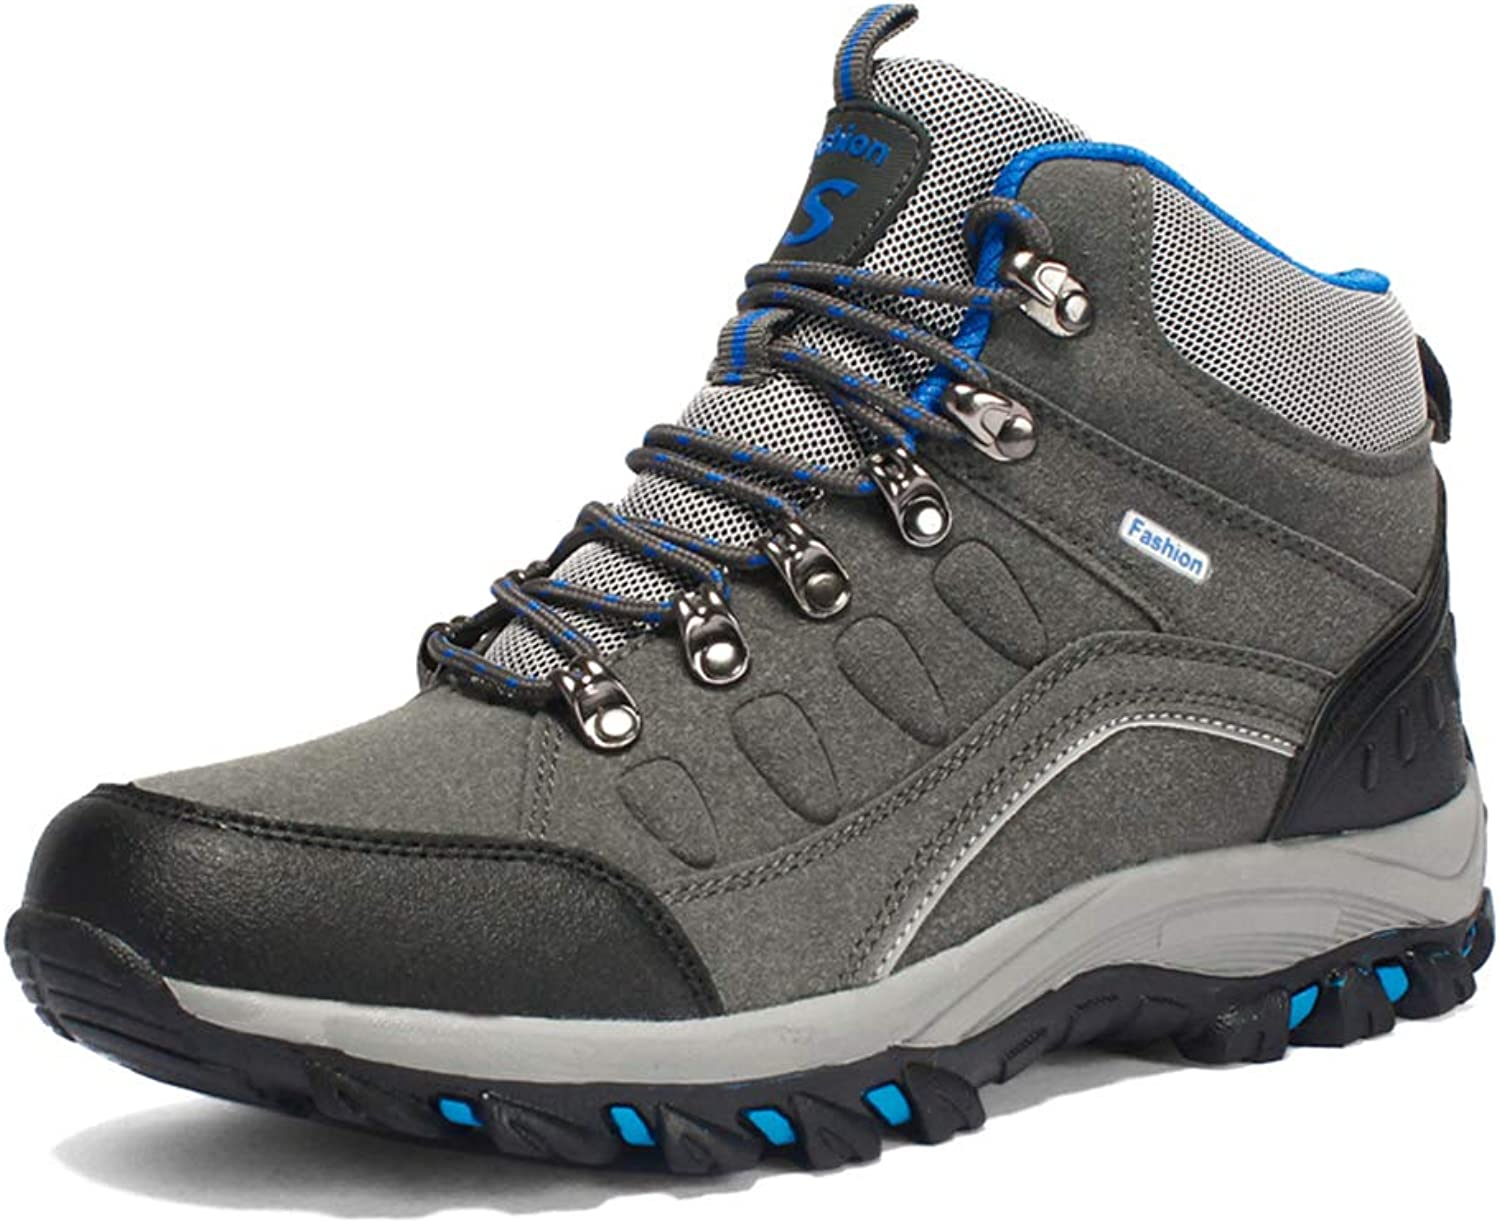 COSDN Womens Mens Outdoor High-Top Lacing Up Trekking shoes Waterproof Resistant Hiking(Fur Lined) Boots